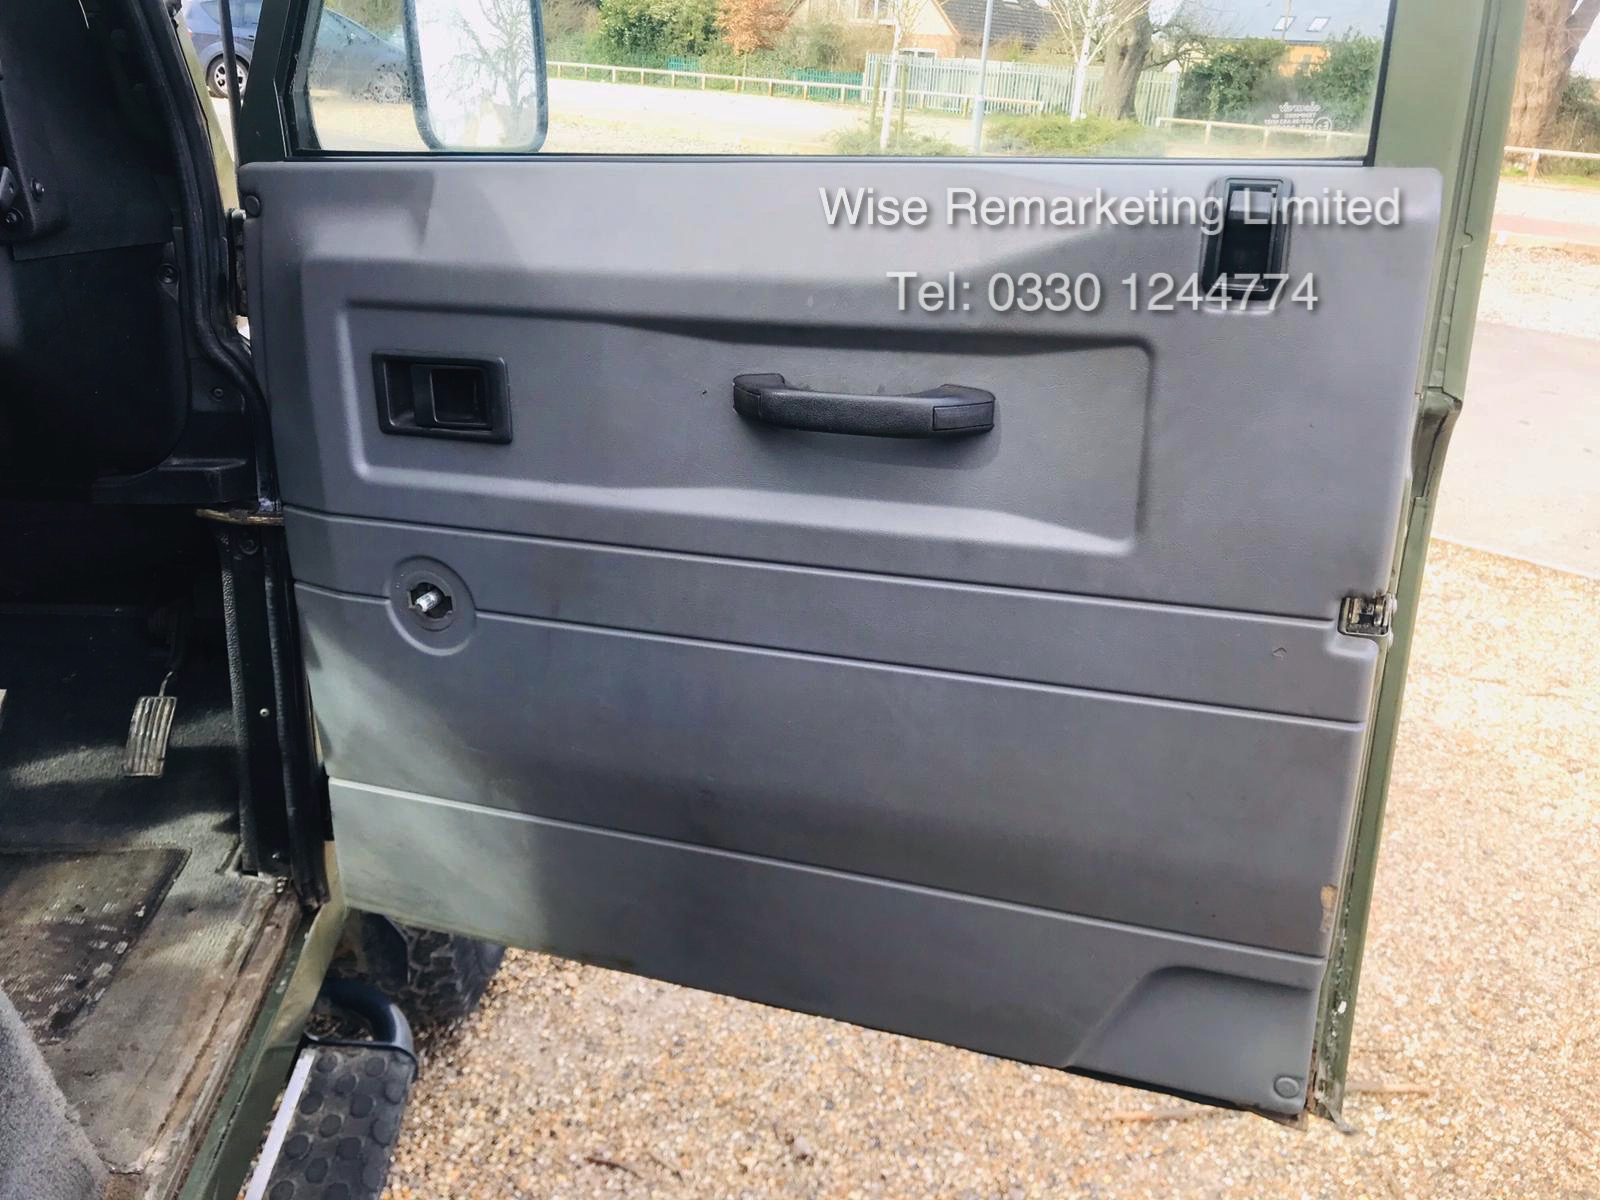 Land Rover Defender 90 County 2.5 TD5 - 2000 Year W Reg - 7 Seater - RARE - SAVE 20% NO VAT - Image 11 of 12